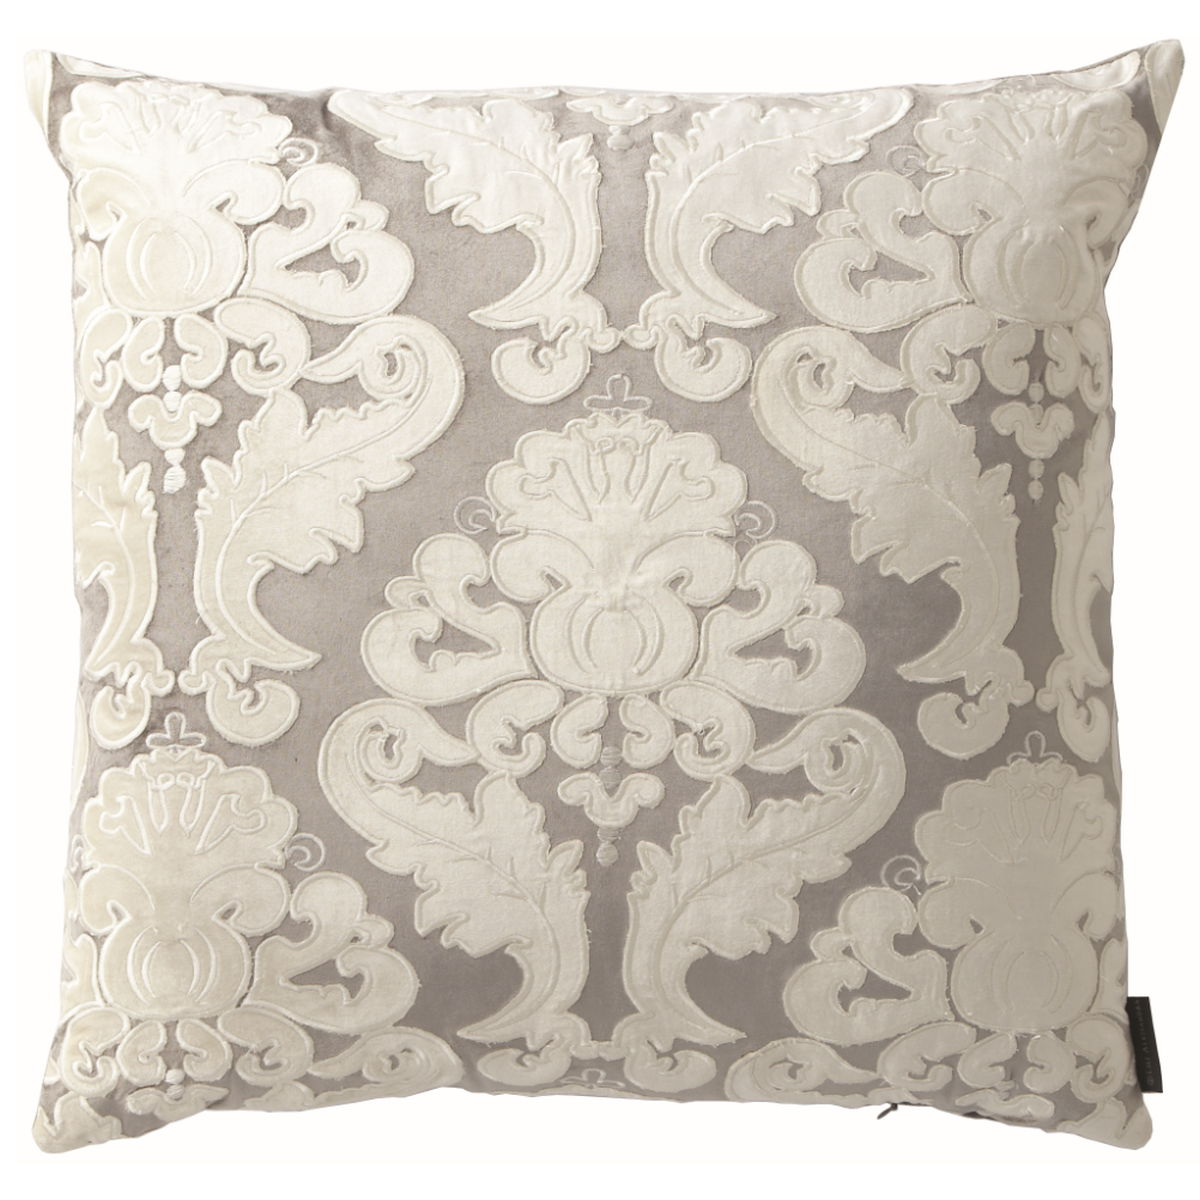 Lili Alessandra Must Have Velvets Decorative Pillows